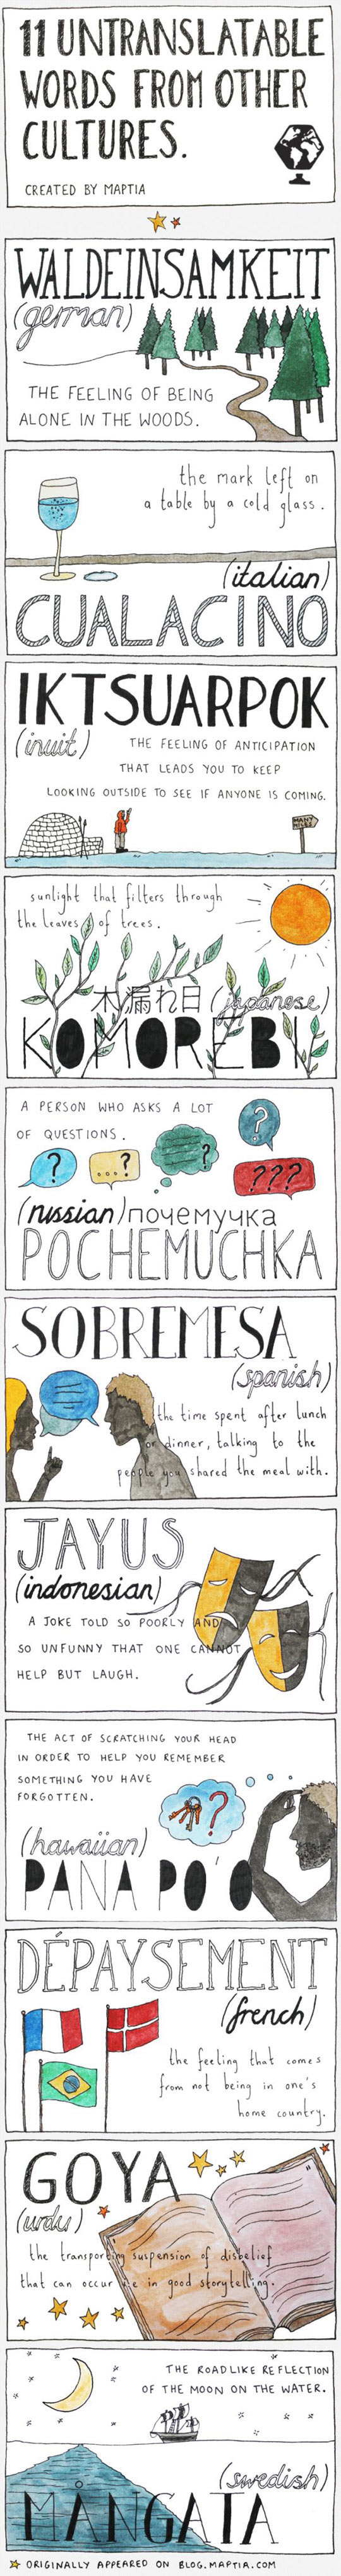 funny-words-untranslatable-other-cultures